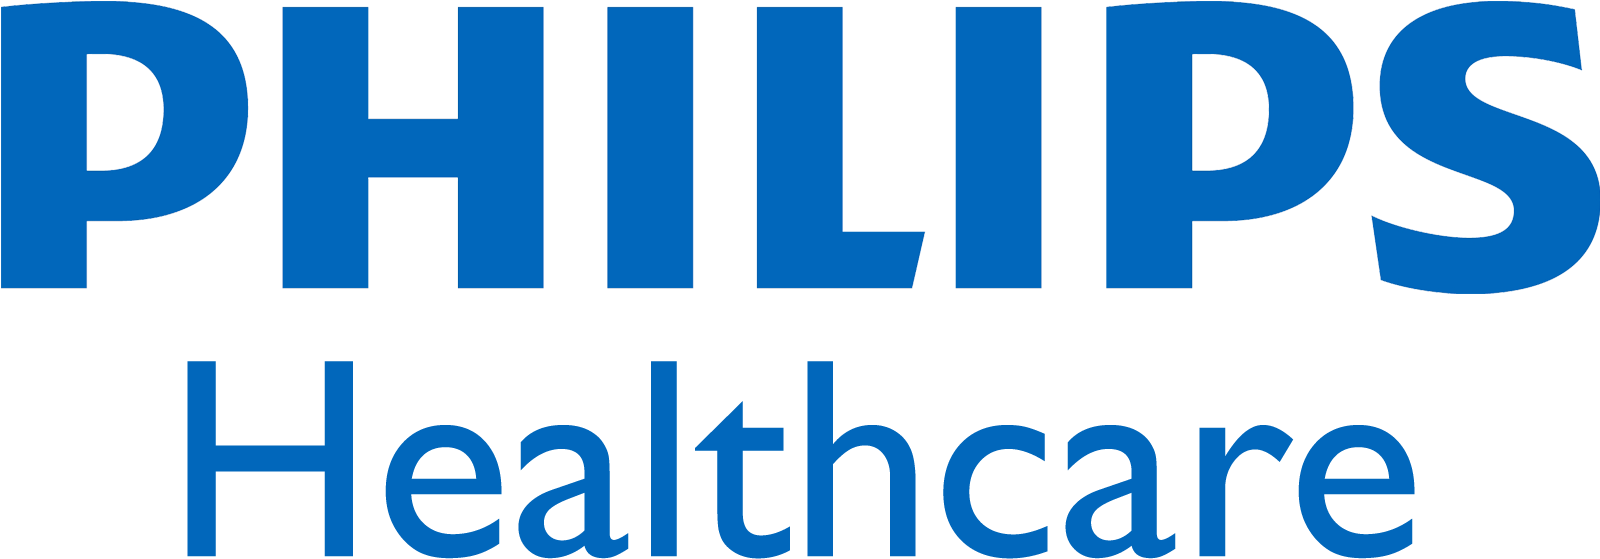 Philips healthcare logo download free clipart with a.